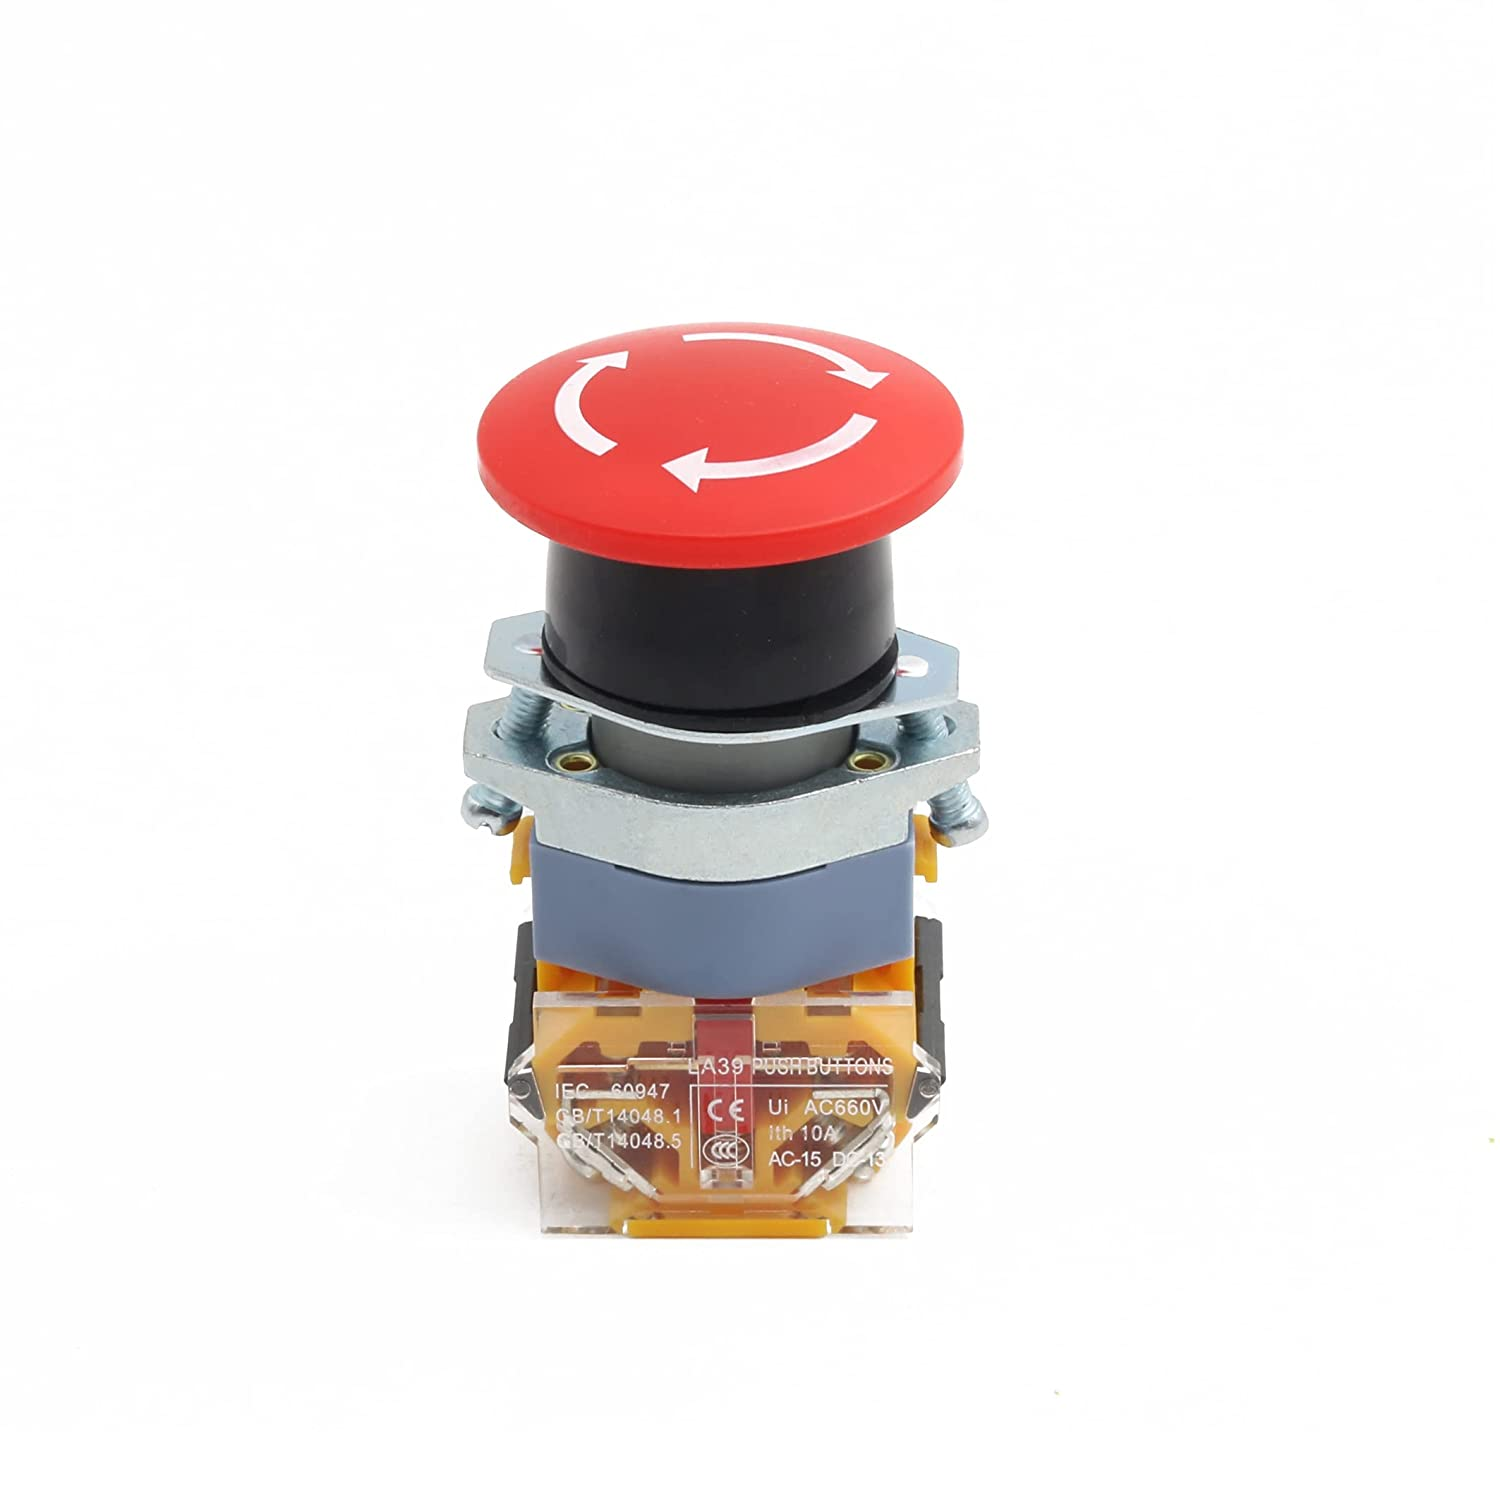 Push Button Switch AC 400V Red Sign E-Stop Mushroom Emergency Rapid rise 22 ! Super beauty product restock quality top!